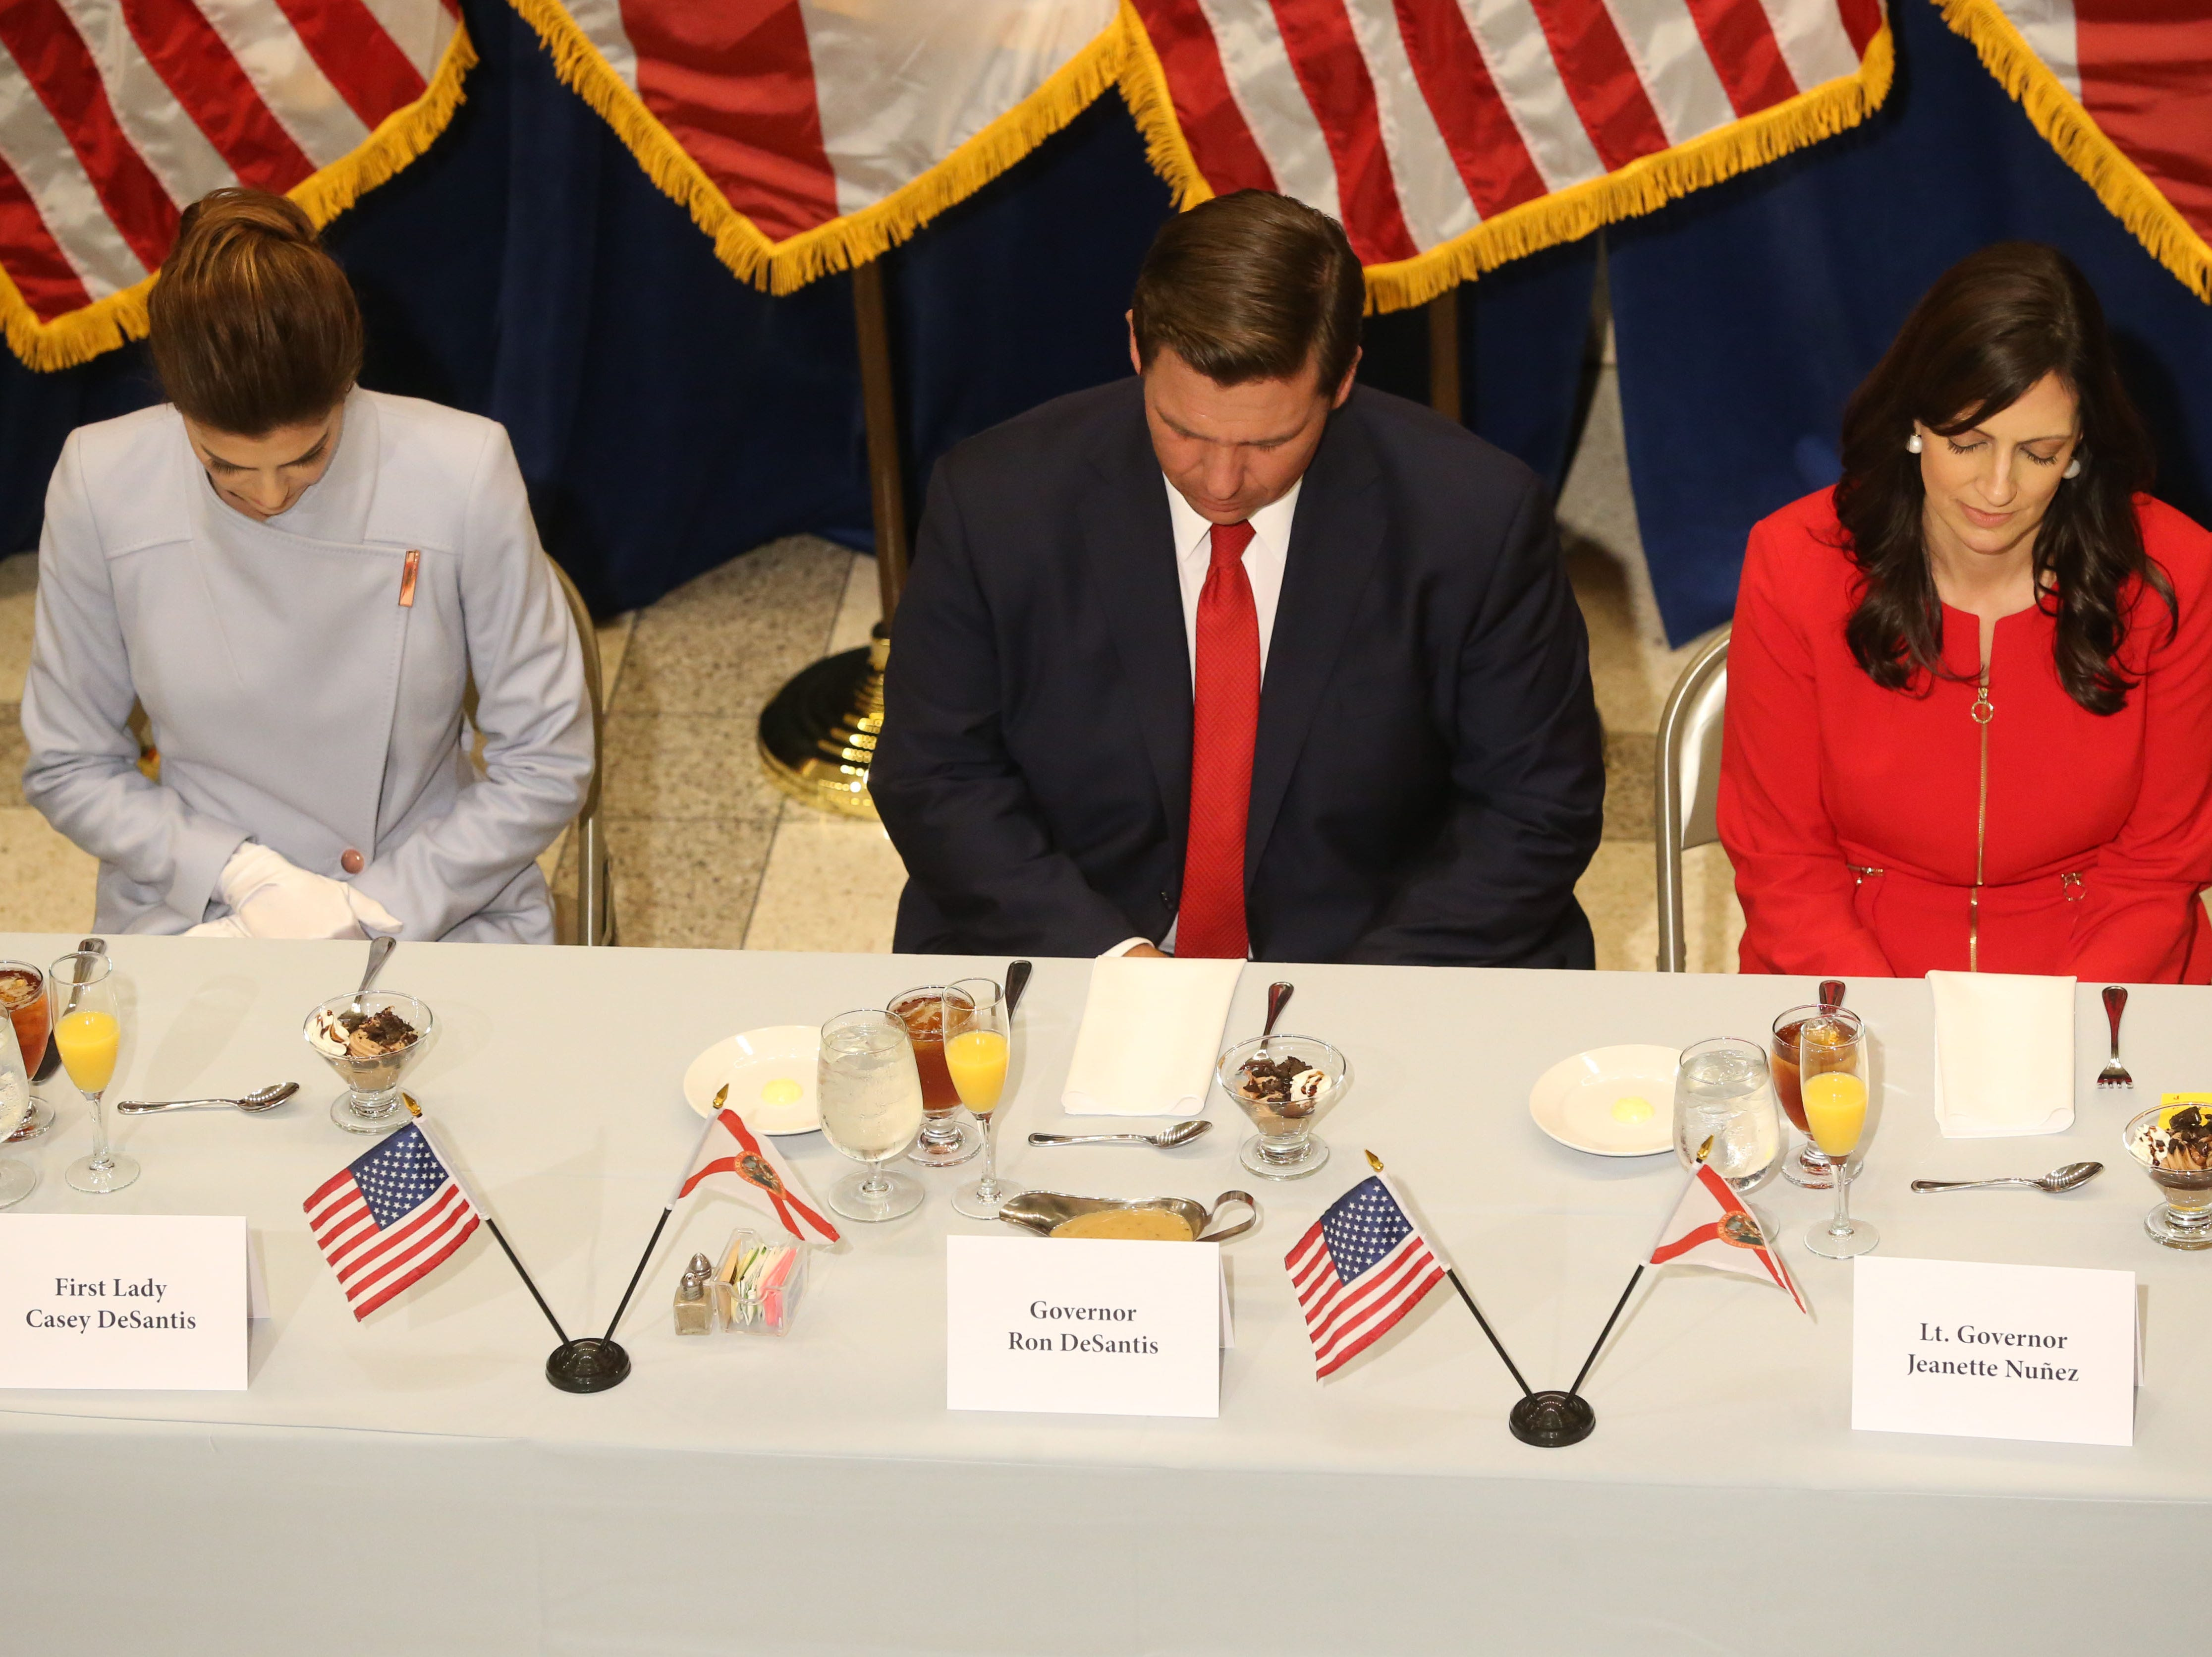 For the first time in Inaugural history, Gov. Ron DeSantis addresses FloridaÕs Legislative leaders and Cabinet officials. DeSantis discusses his plans to work with our stateÕs elected leaders to achieve a Bold Vision for a Brighter Future, Tuesday, Jan. 8, 2019. First lady Casey DeSantis, left, Gov. Ron DeSantis, and Lt. Gov. Jeanette Nunez bow their head in prayer before lunch.